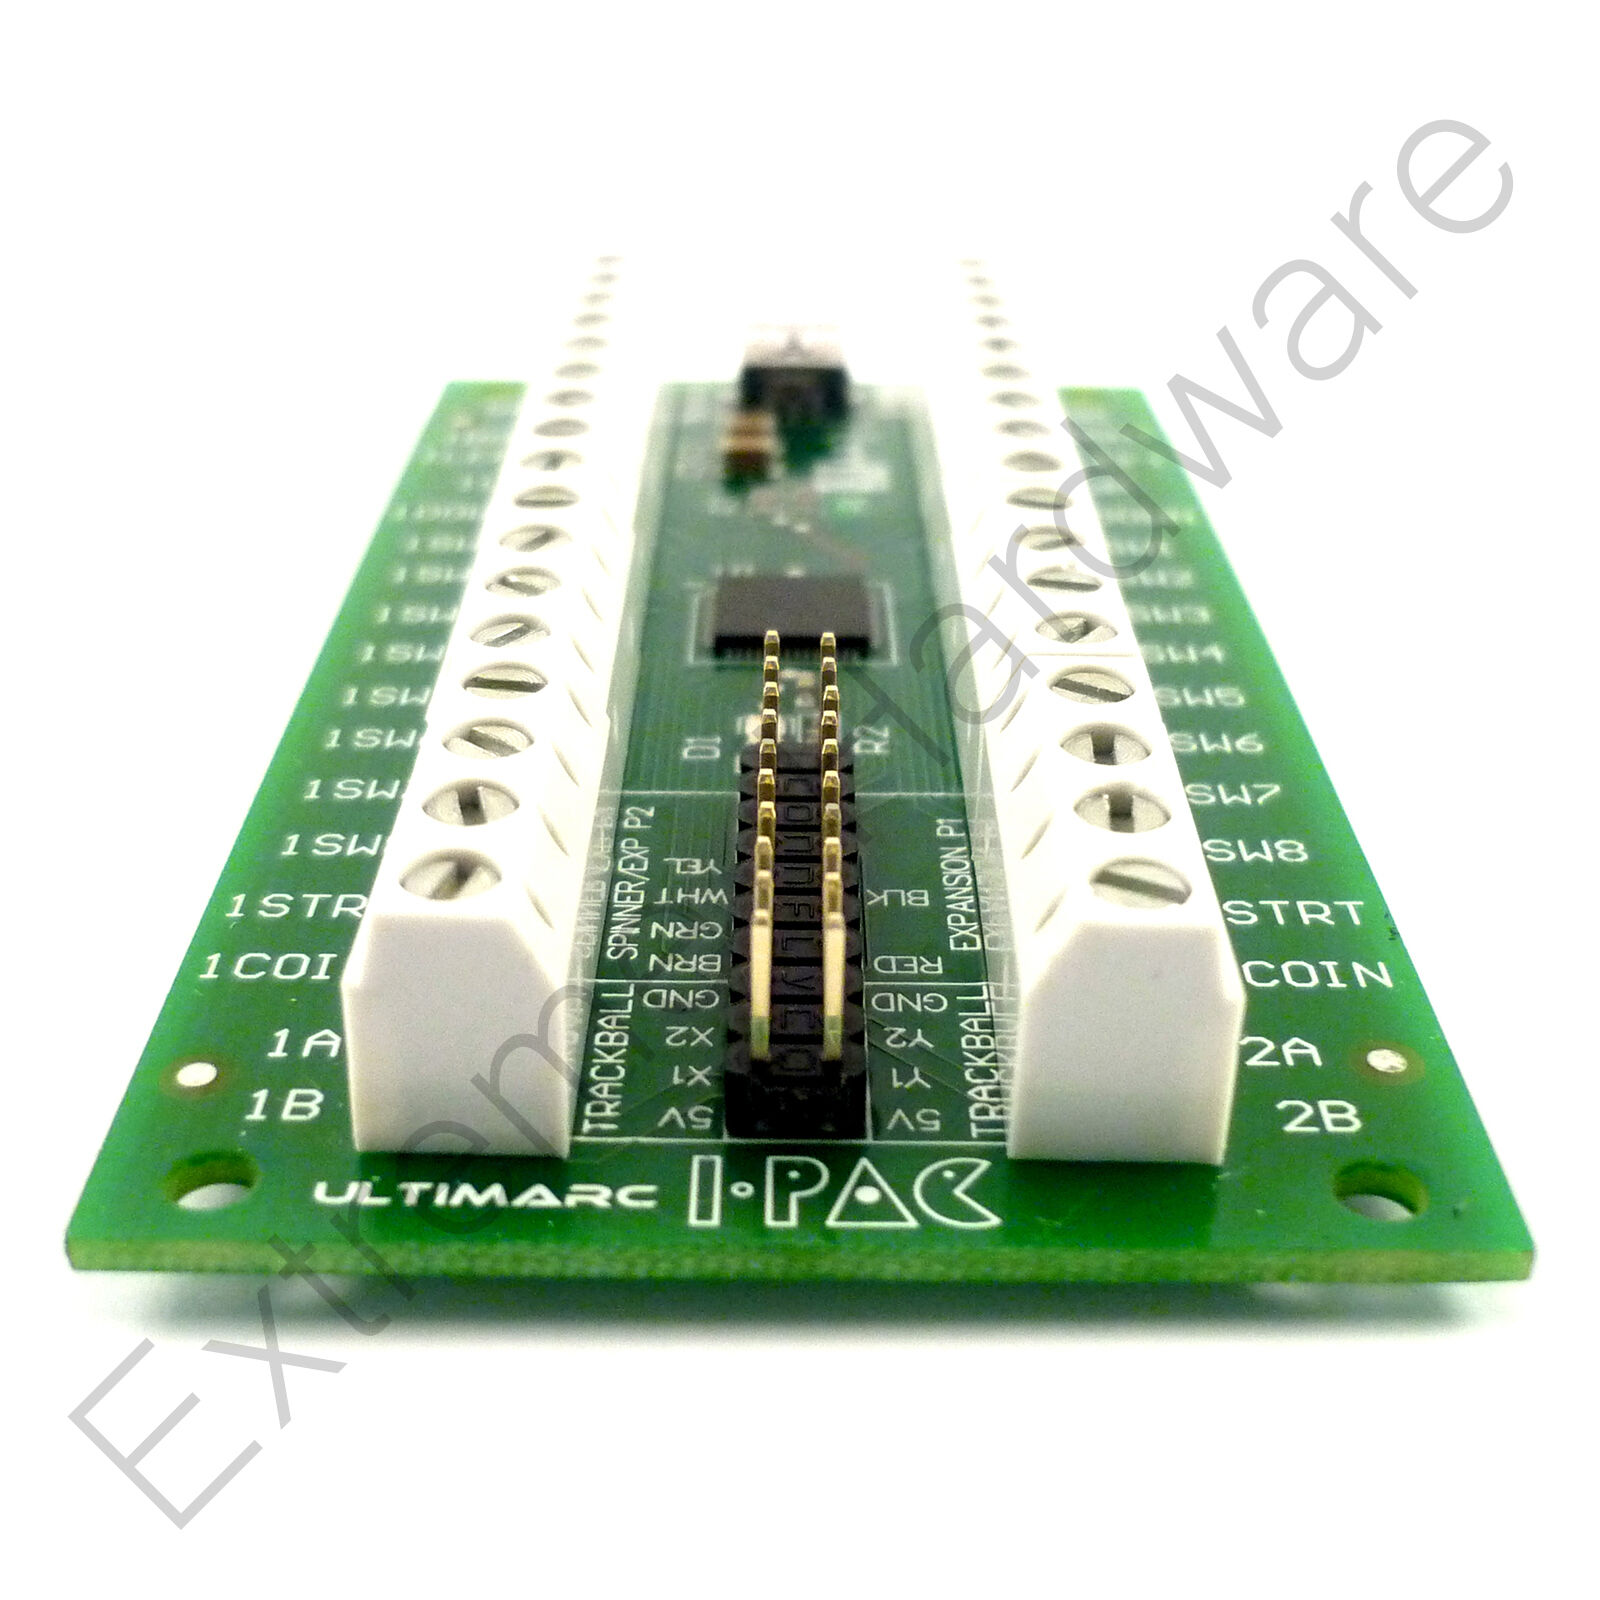 Ultimarc IPAC 2 Keyboard Encoder with USB Cable - New Latest Version MAME I-PAC